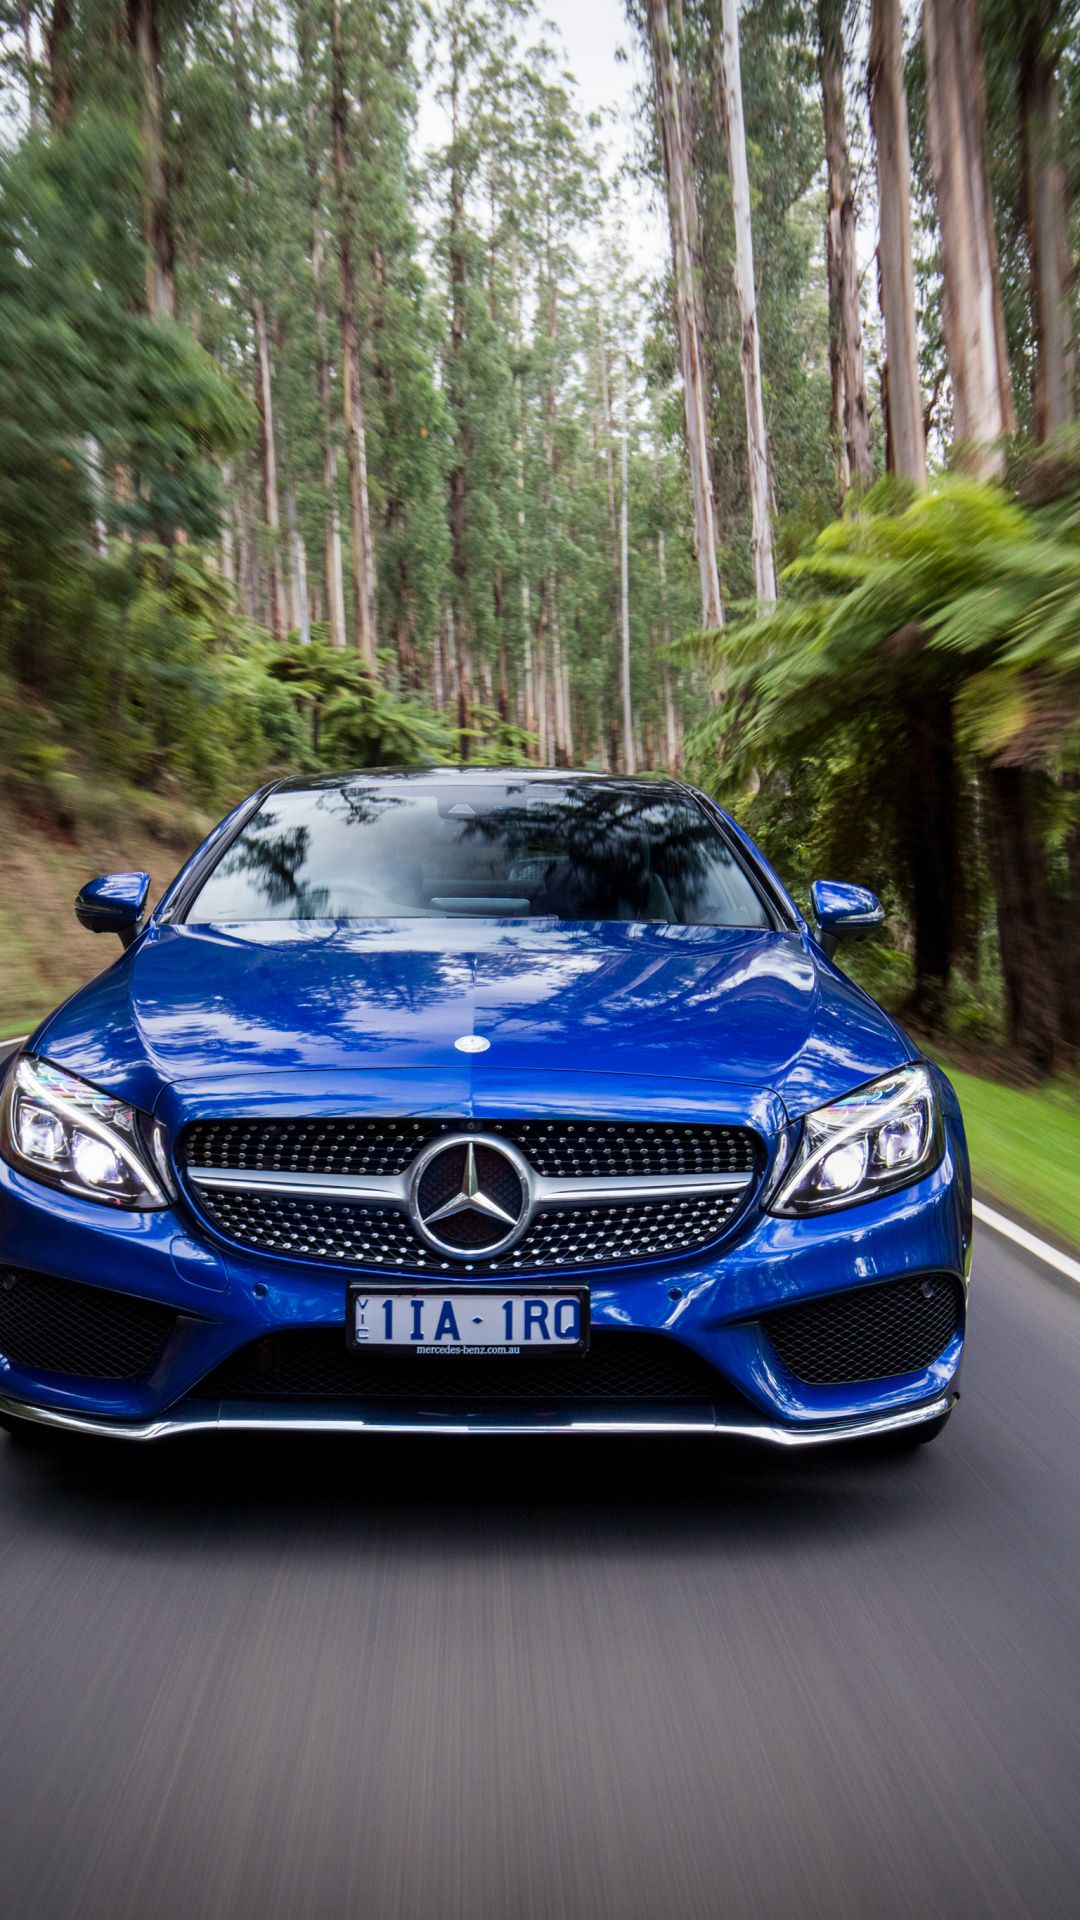 Each wallpaper is provided with the name, company, model of that car. Motion Blur Mercedes Benz C Class Blue 1080x1920 Wallpaper Car Iphone Wallpaper Benz Dream Cars Jeep